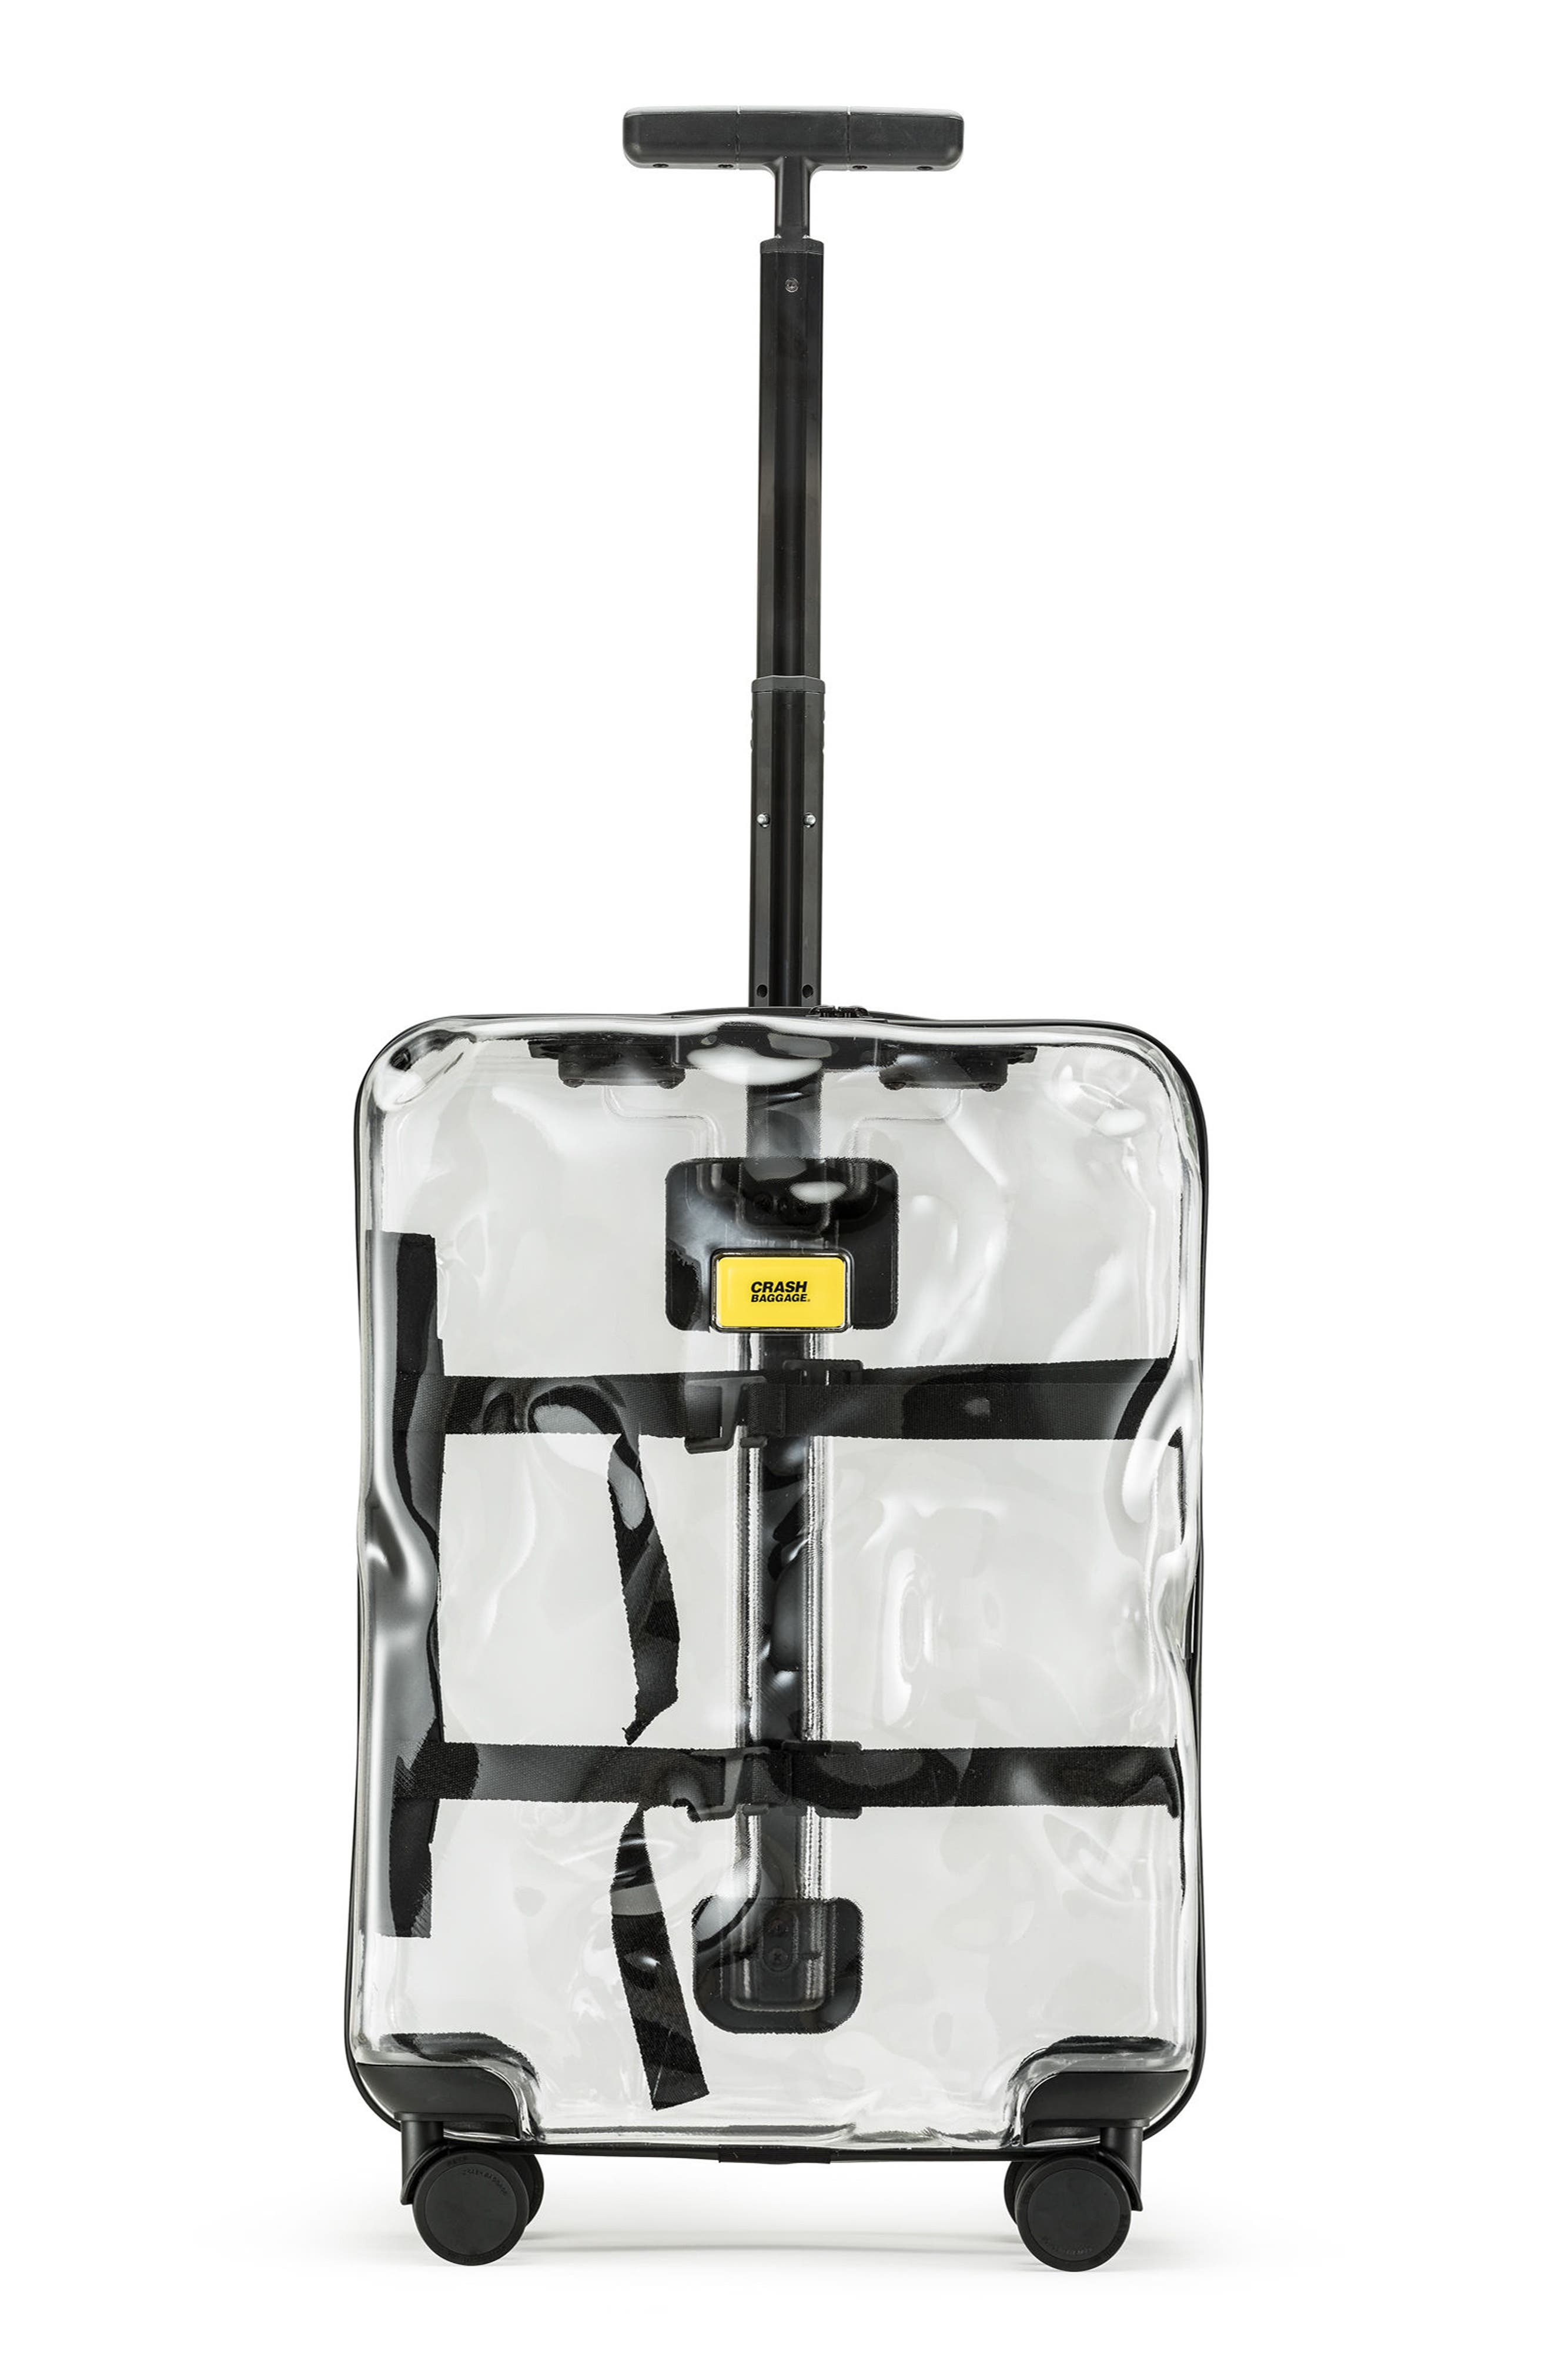 CRASH BAGGAGE Small Share Cabin Trolley Case